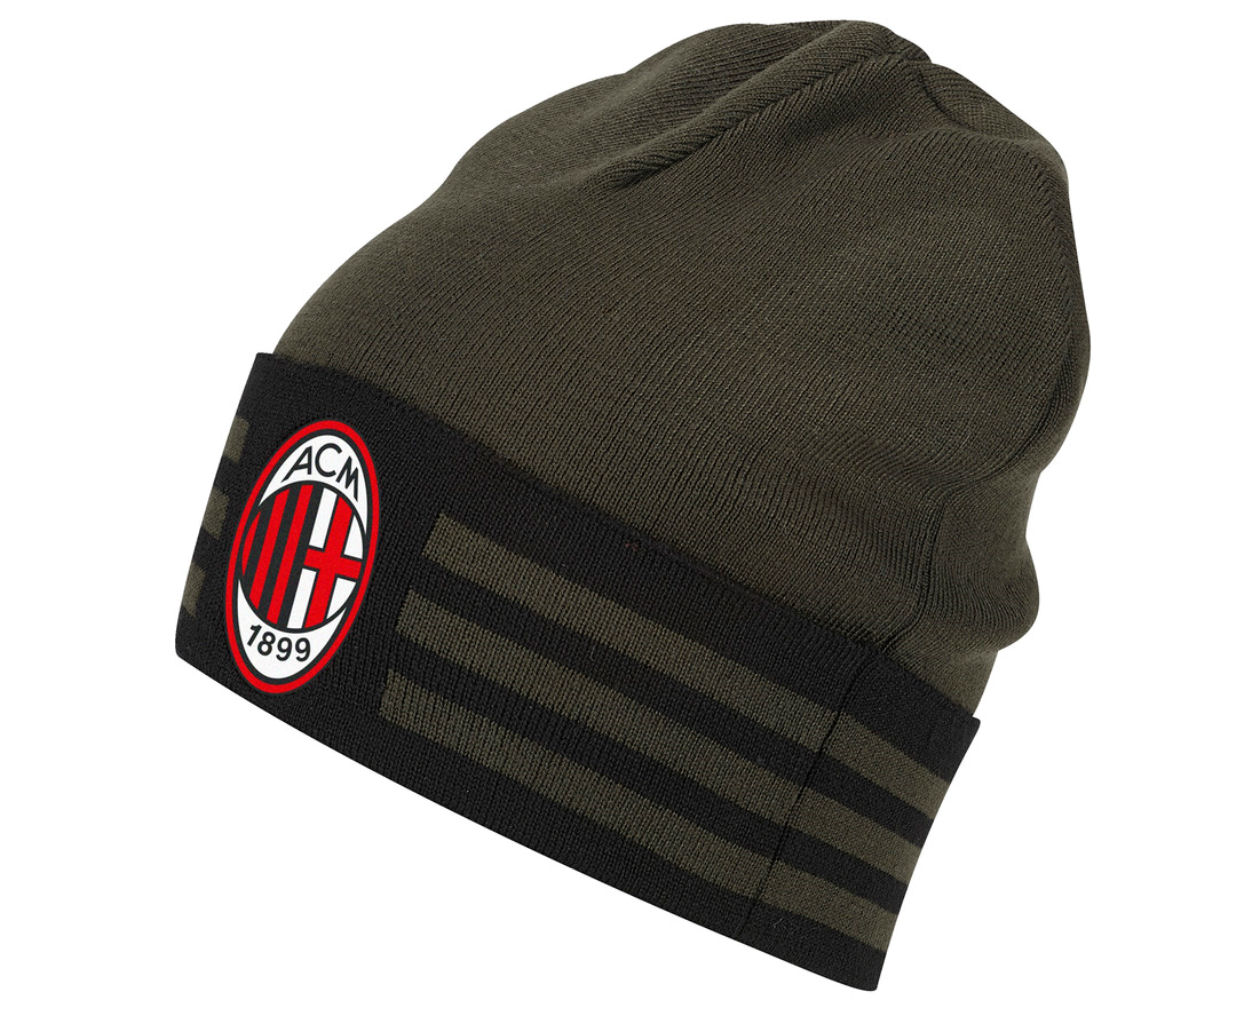 AC Milan 2016-2017 3S Woolie Hat (Night Cargo)  S95163  -  19.56 ... be6b60f52b73